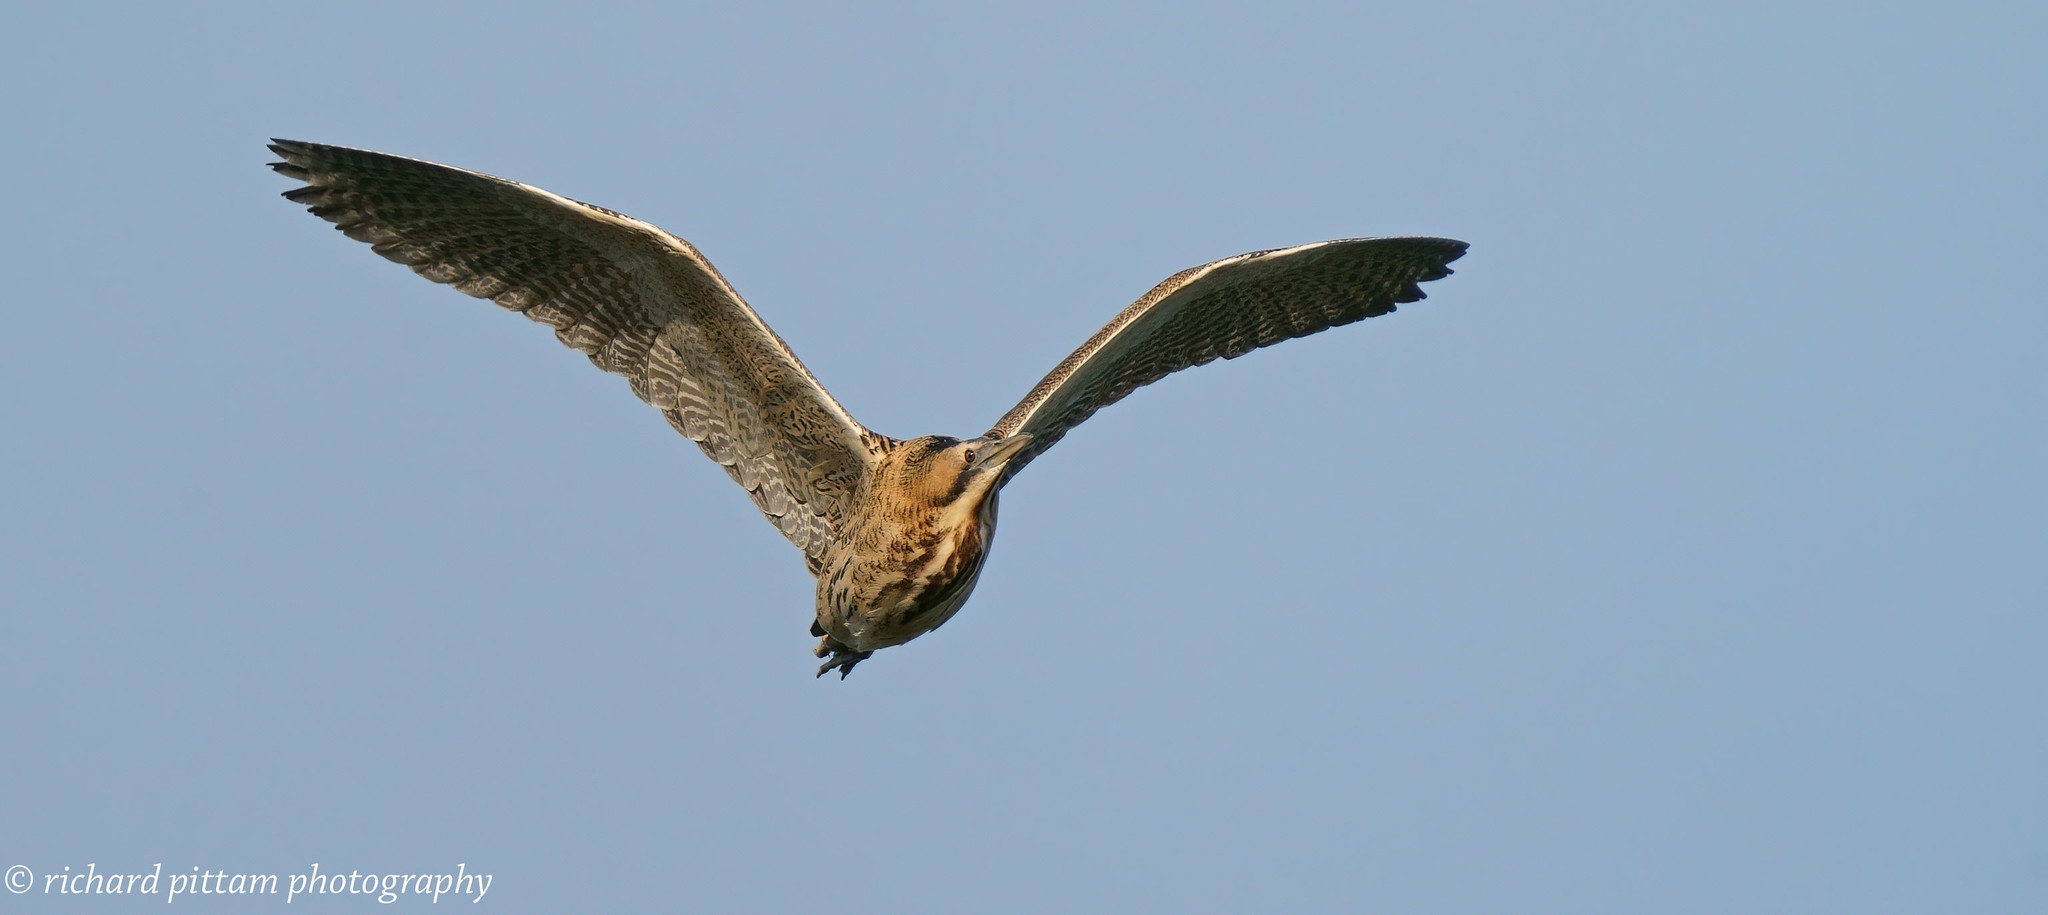 Bittern - I had a lucky 10 seconds to snatch these chance shots